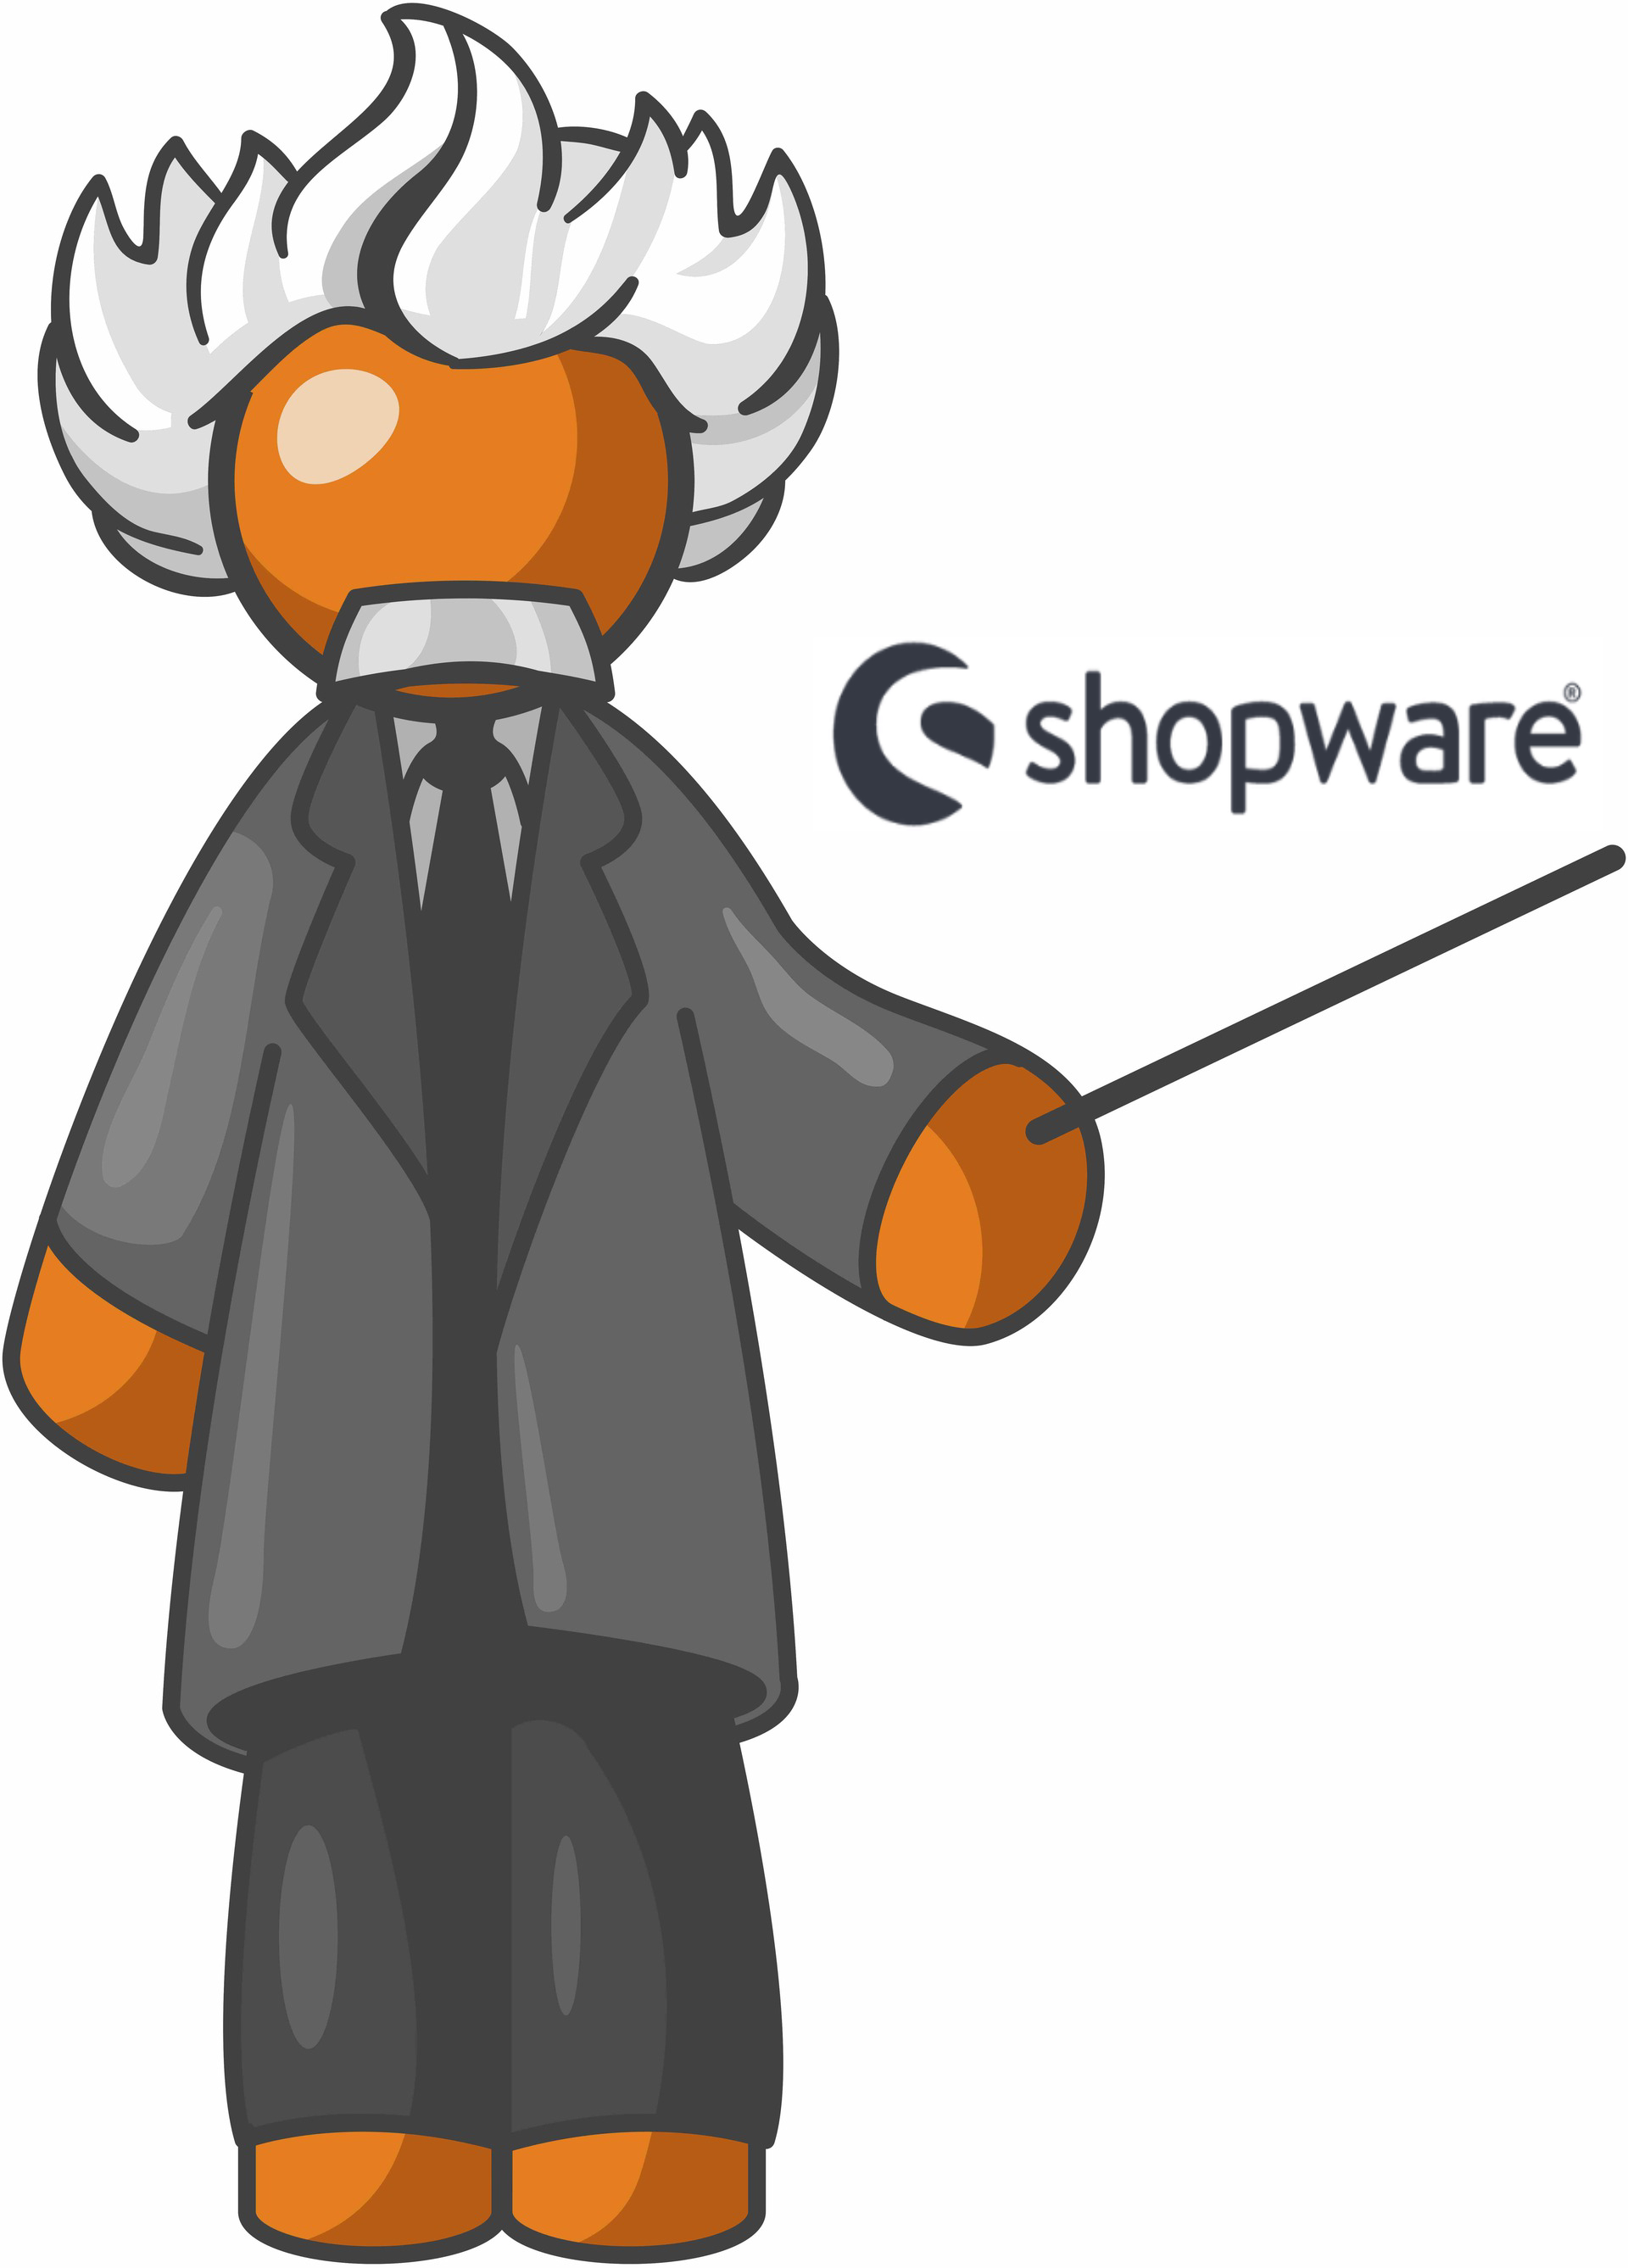 Shopware training product image